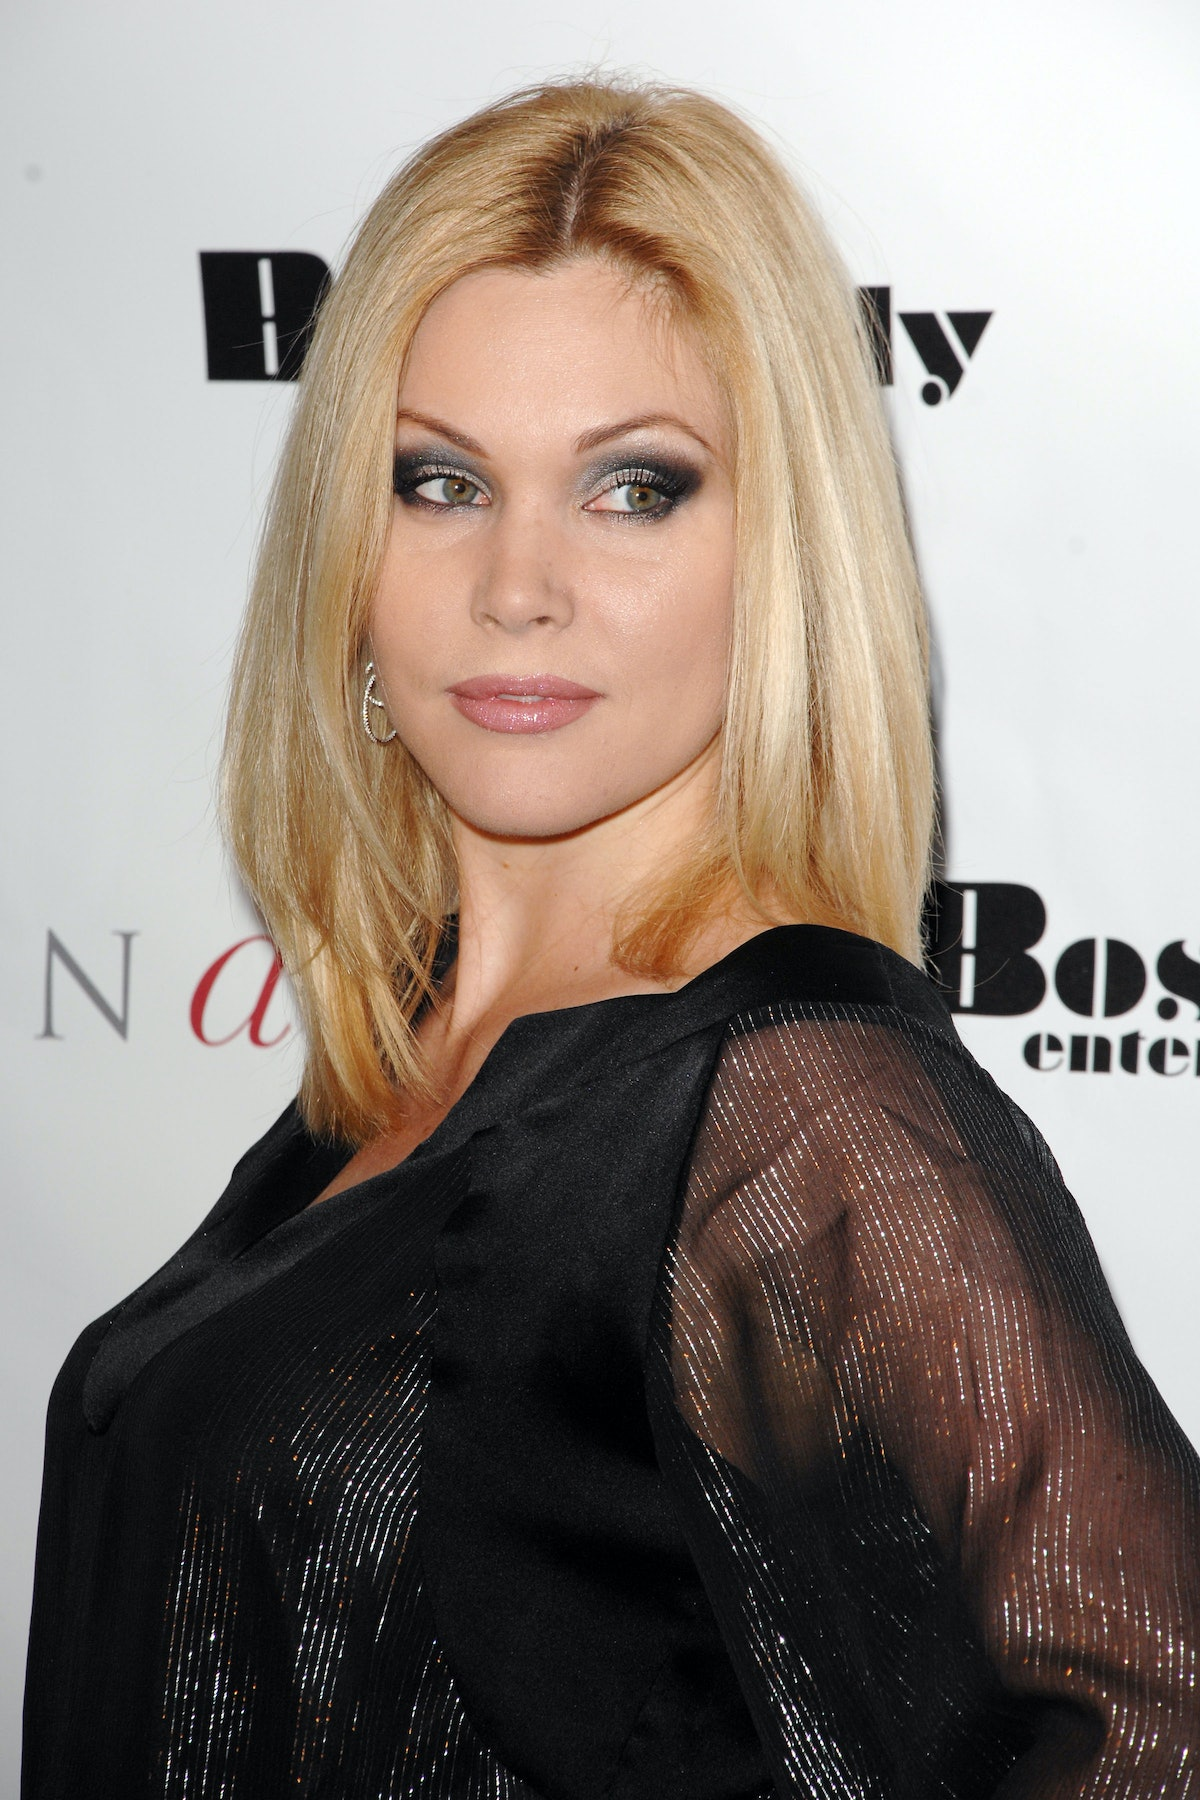 """FEBRUARY 25: Shanna Moakler attends Lupus LA Raises Awareness with """"Get Lucky for Lupus"""" on February 25, 2010 in West Hollywood, California. (Photo by ANDREAS BRANCH/Patrick McMullan via Getty Images)"""